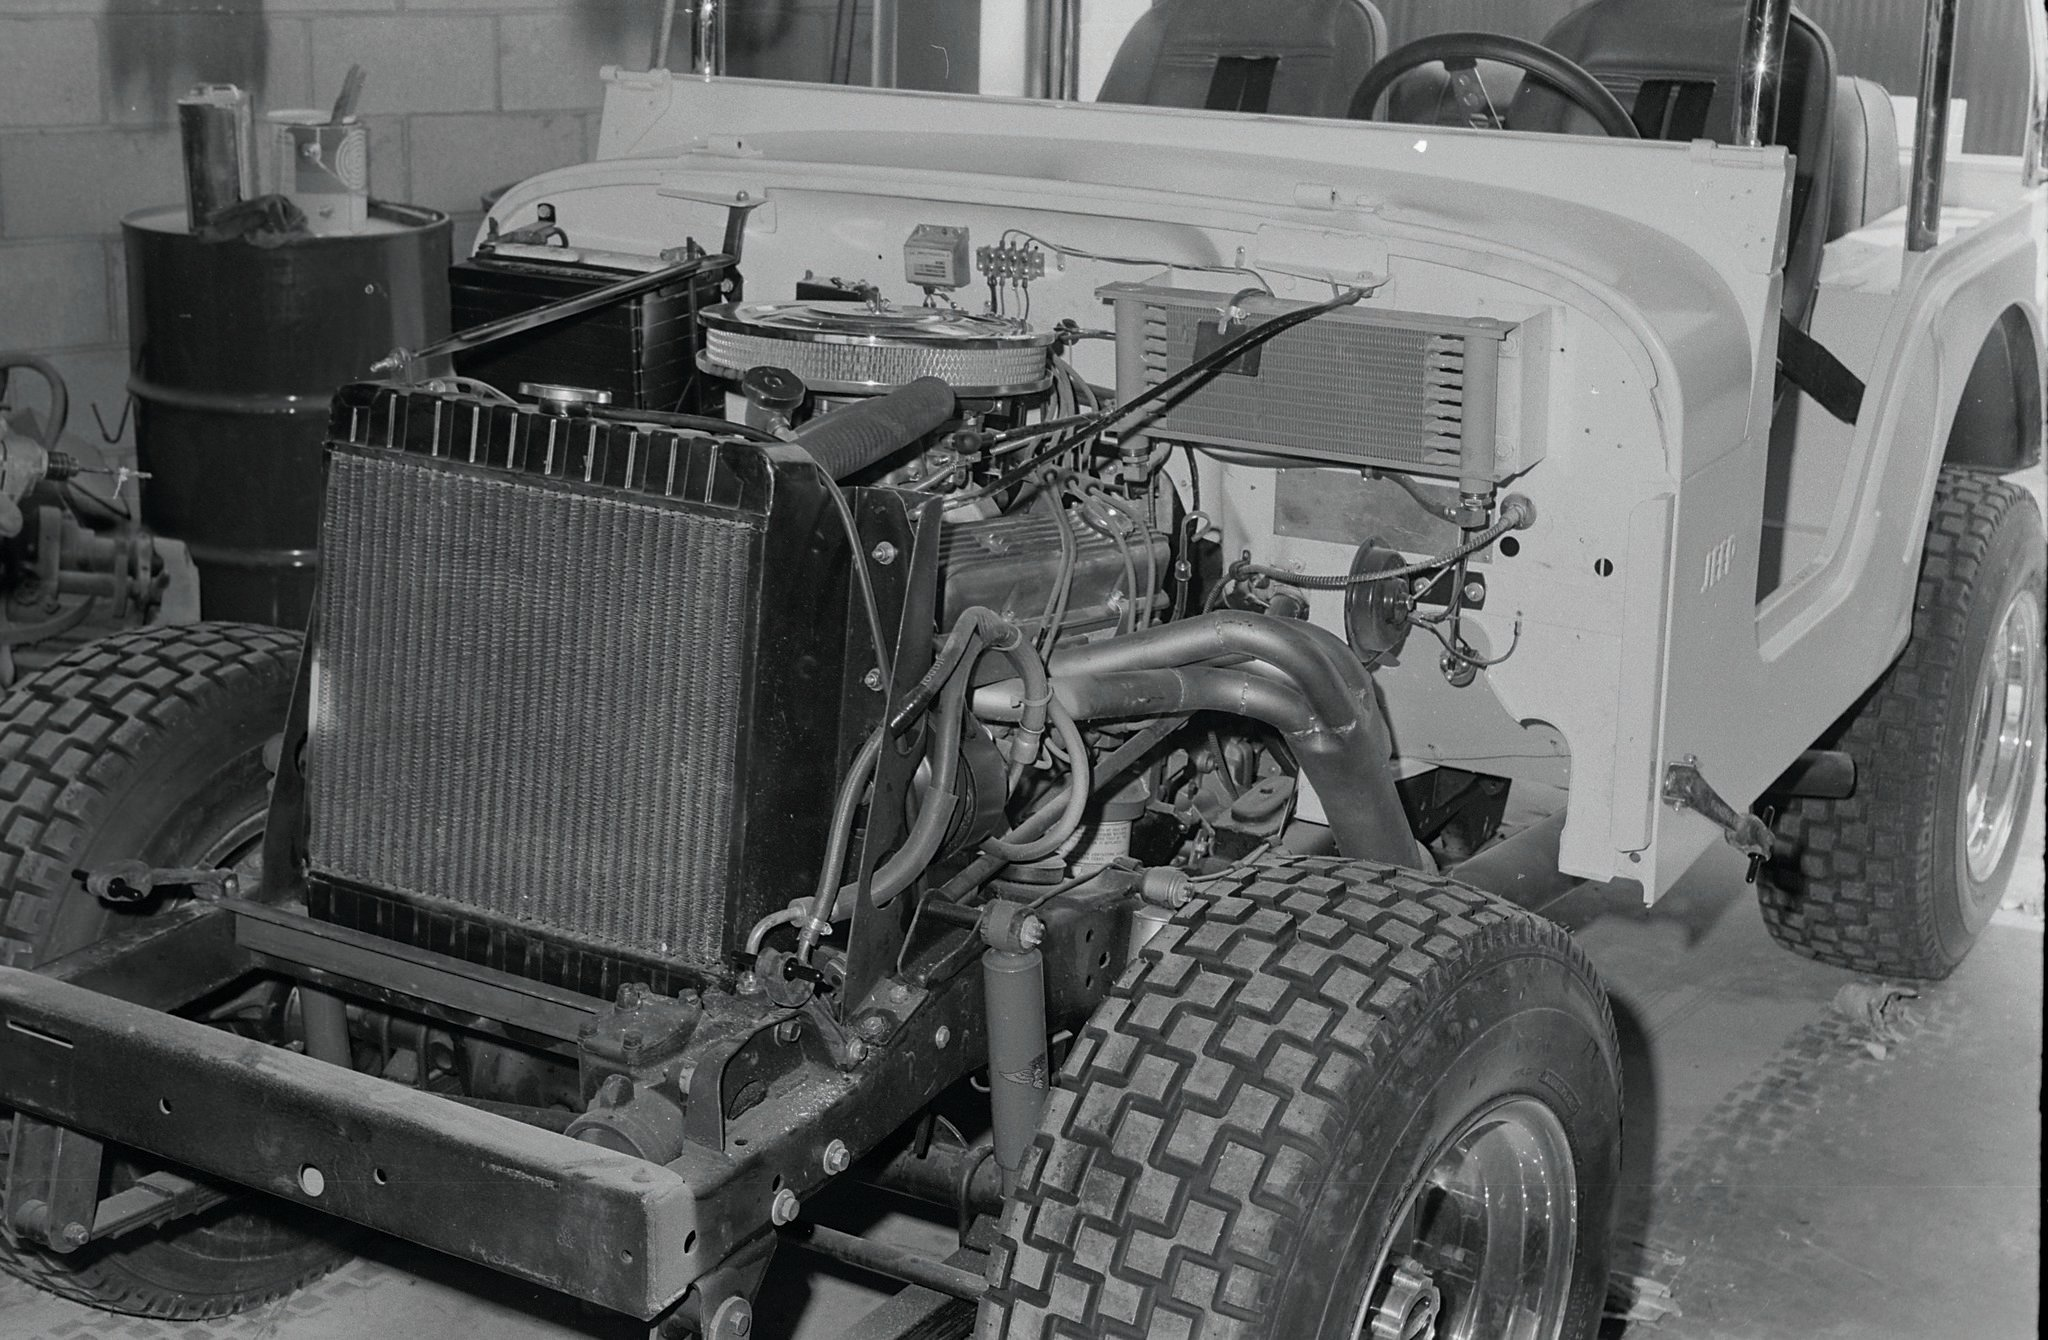 The powerhouse: a 350 Hi Perf Chevy with upswept headers. The Hayden trans cooler keeps things cool in the Turbo Hydro.